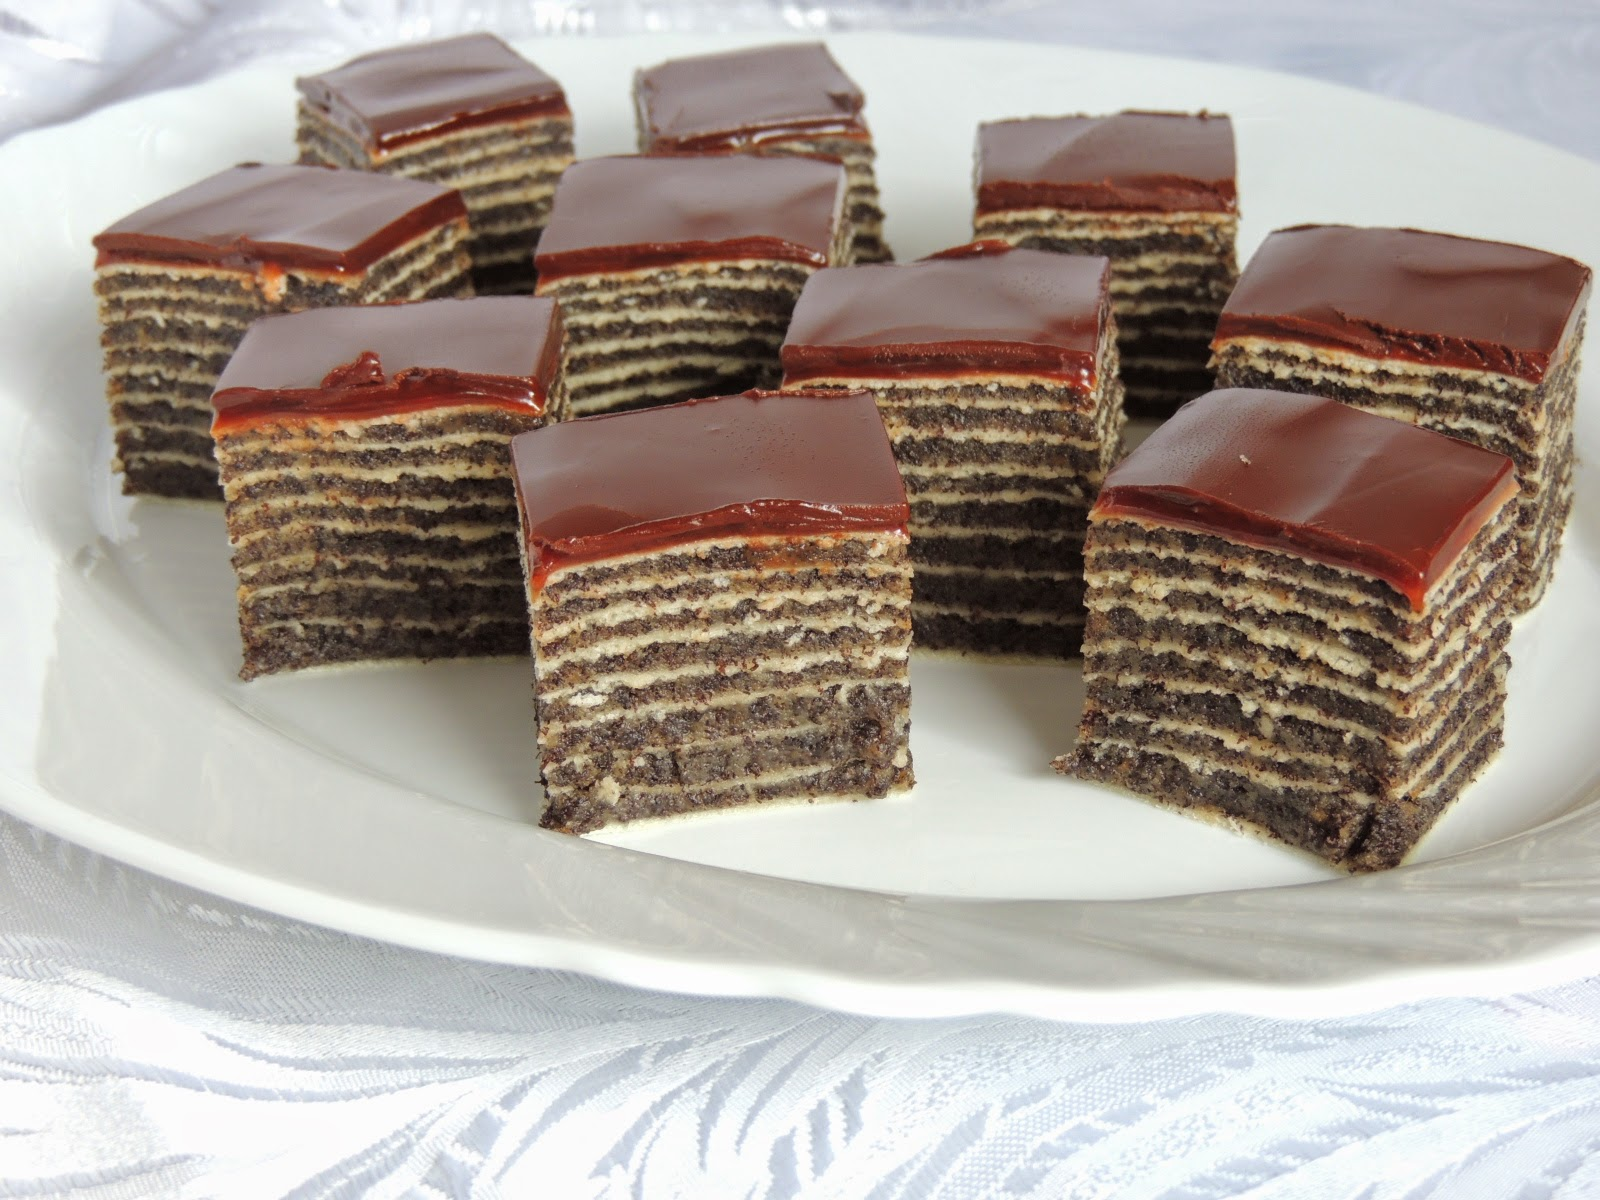 Unbaked cake with poppy seeds